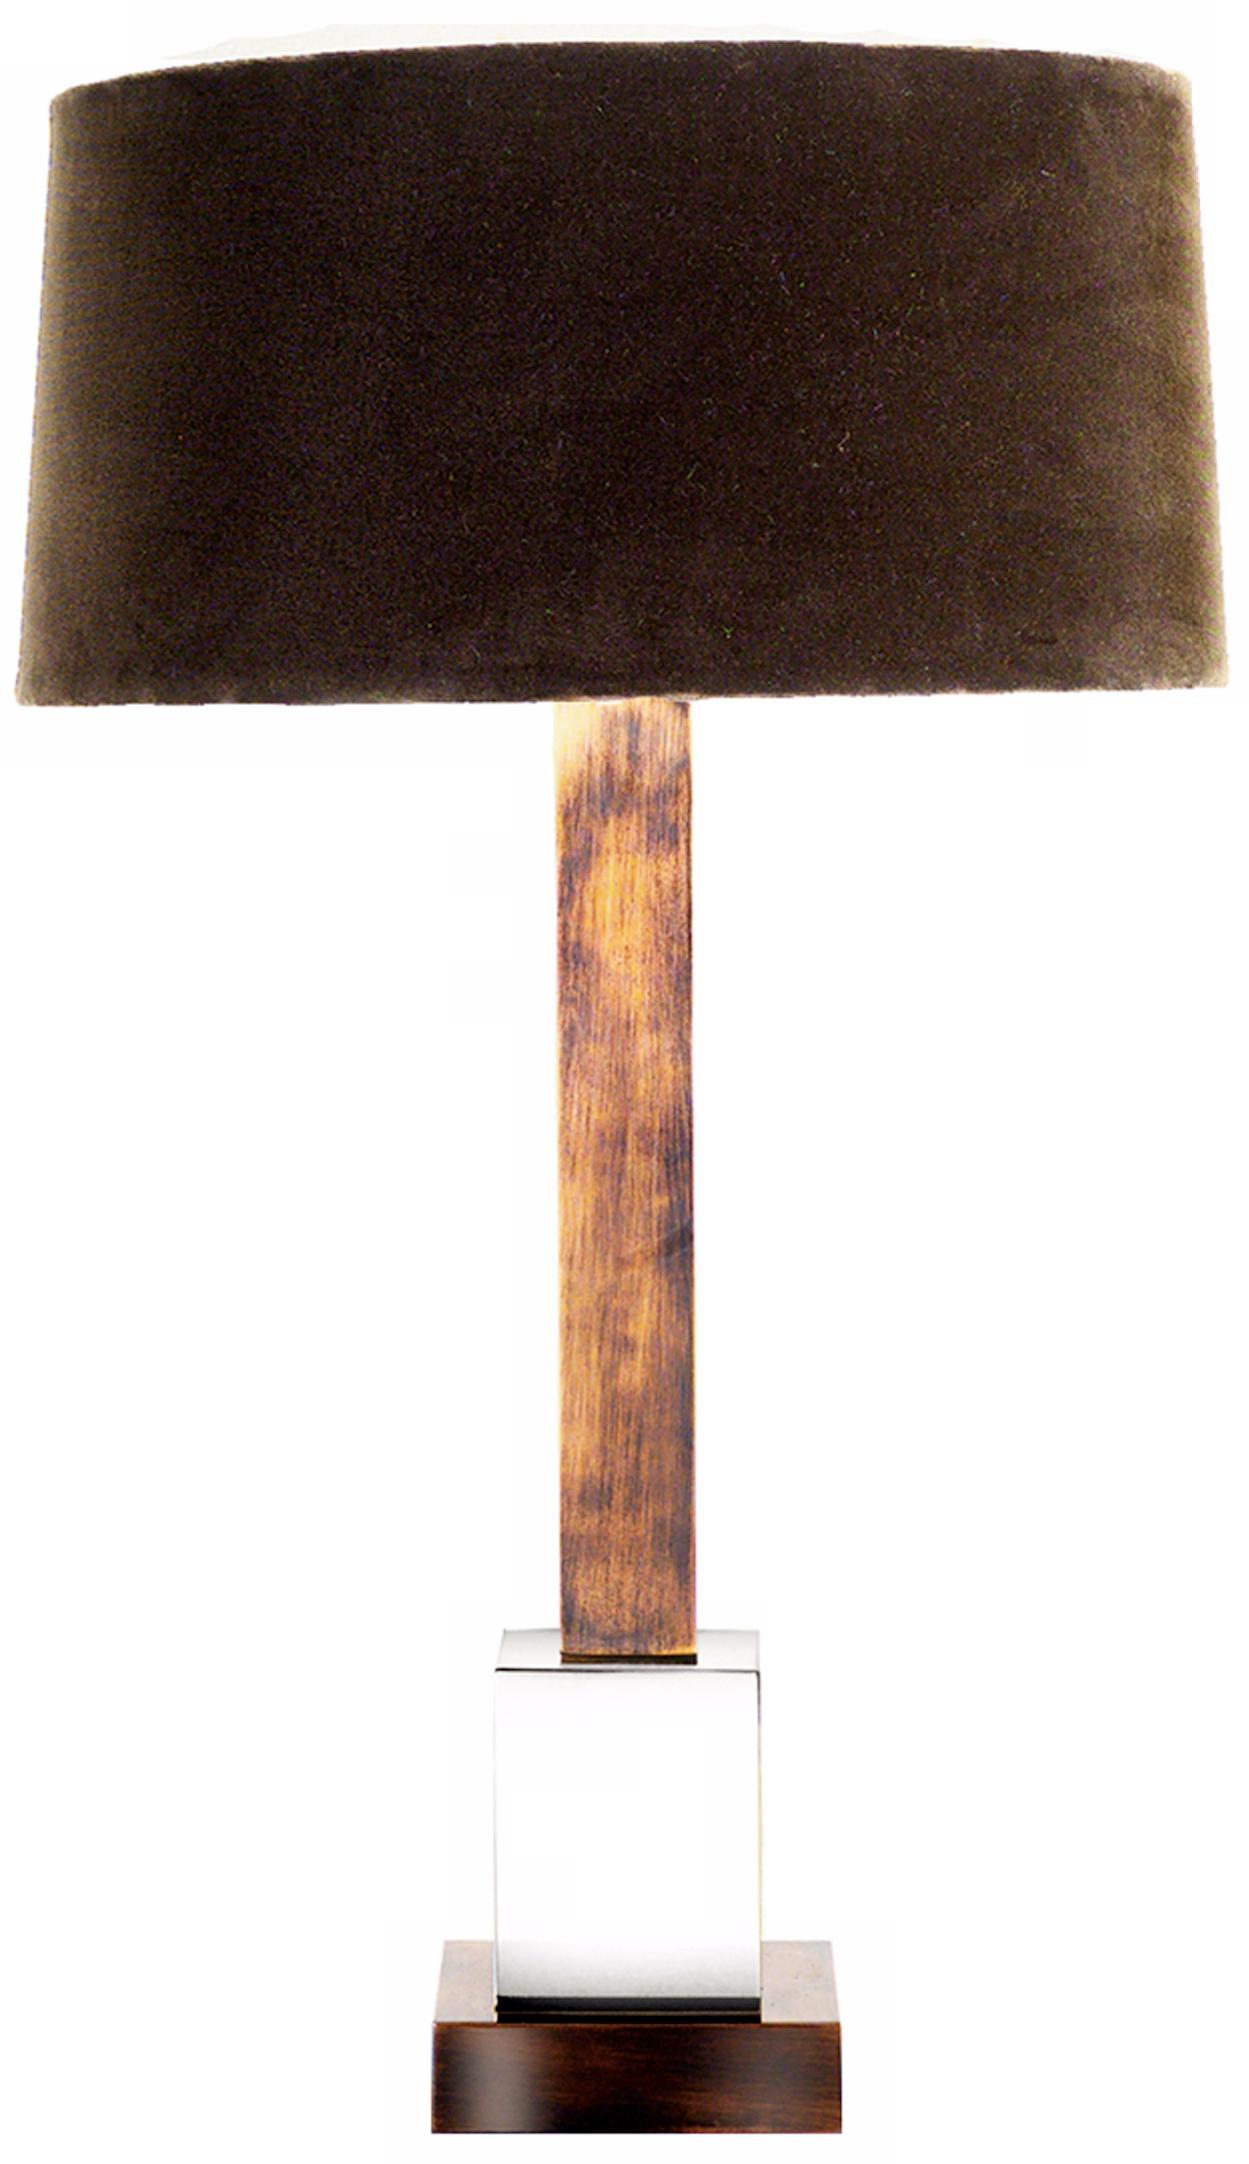 Frederick Cooper Milano I Table Lamp (N9511)